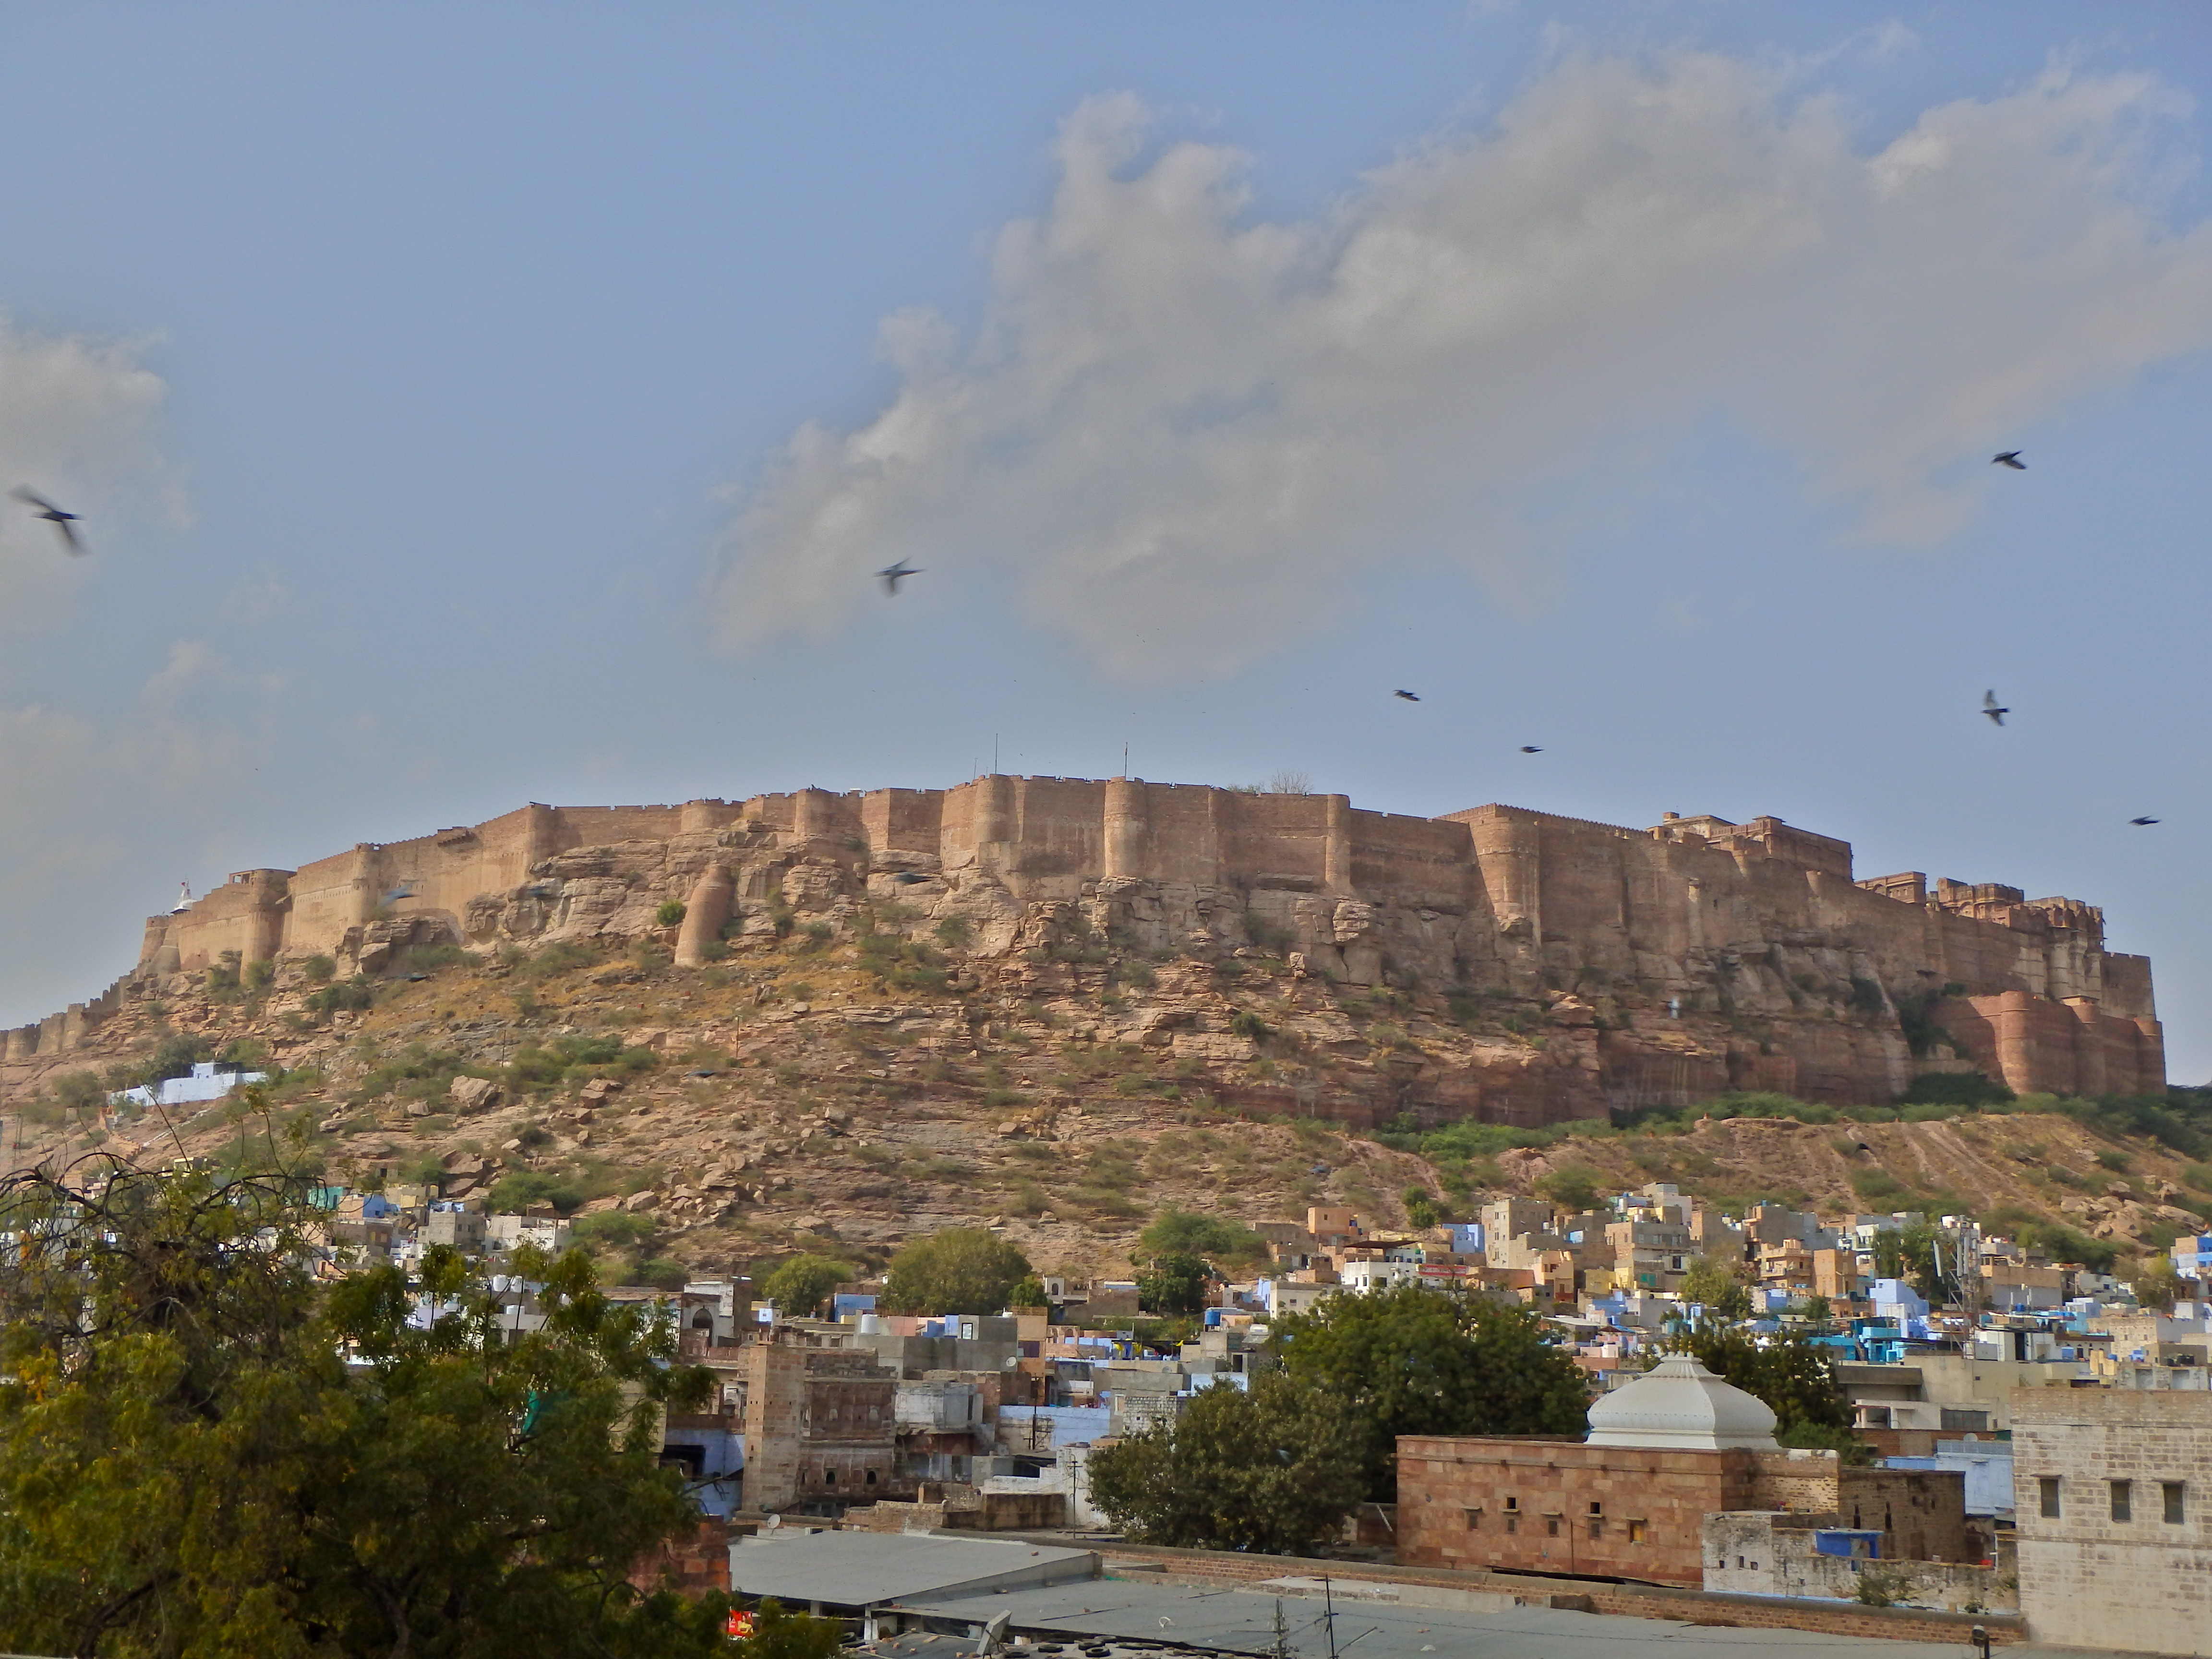 Mehangarha, Jodhpur, India best forts to visit in india rajasthan forts where to go in jodhpur